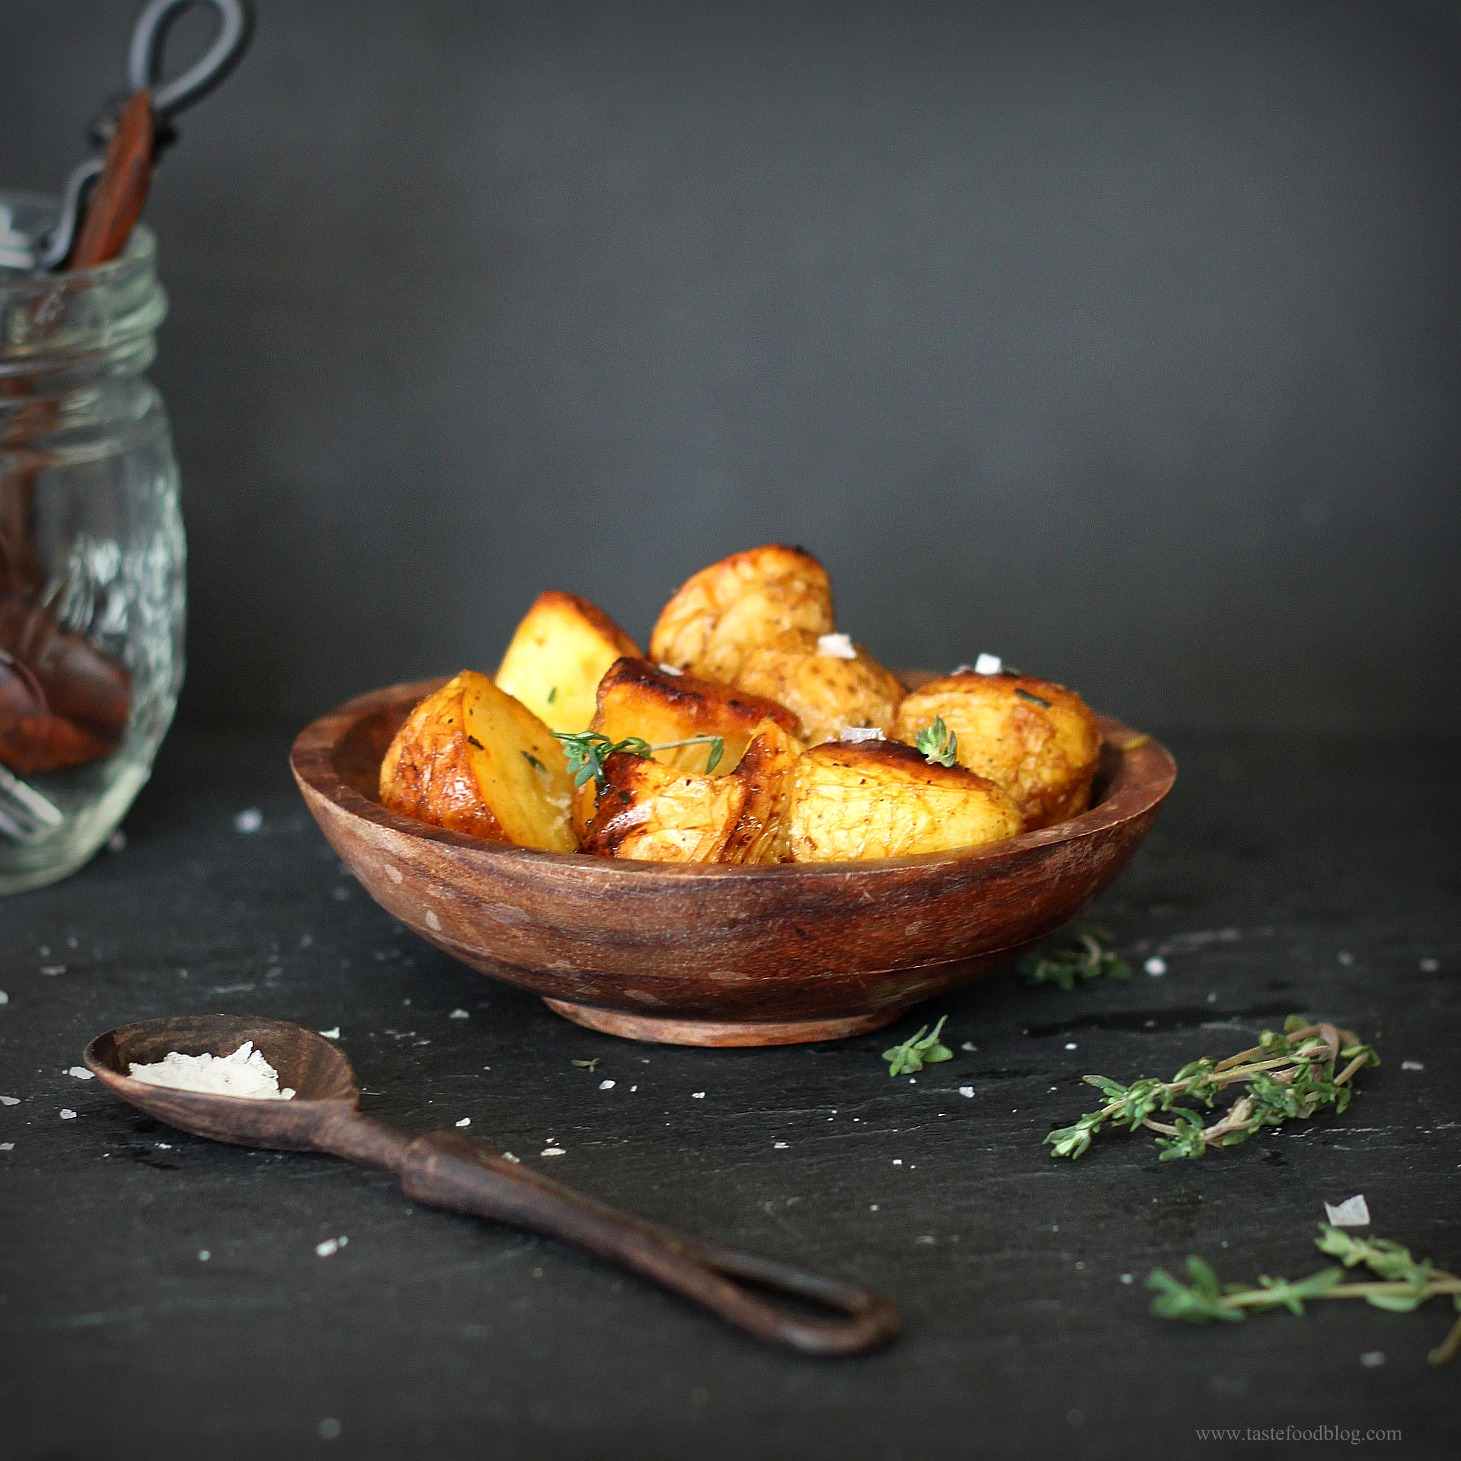 Roasted Potatoes With Sea Salt And Thyme